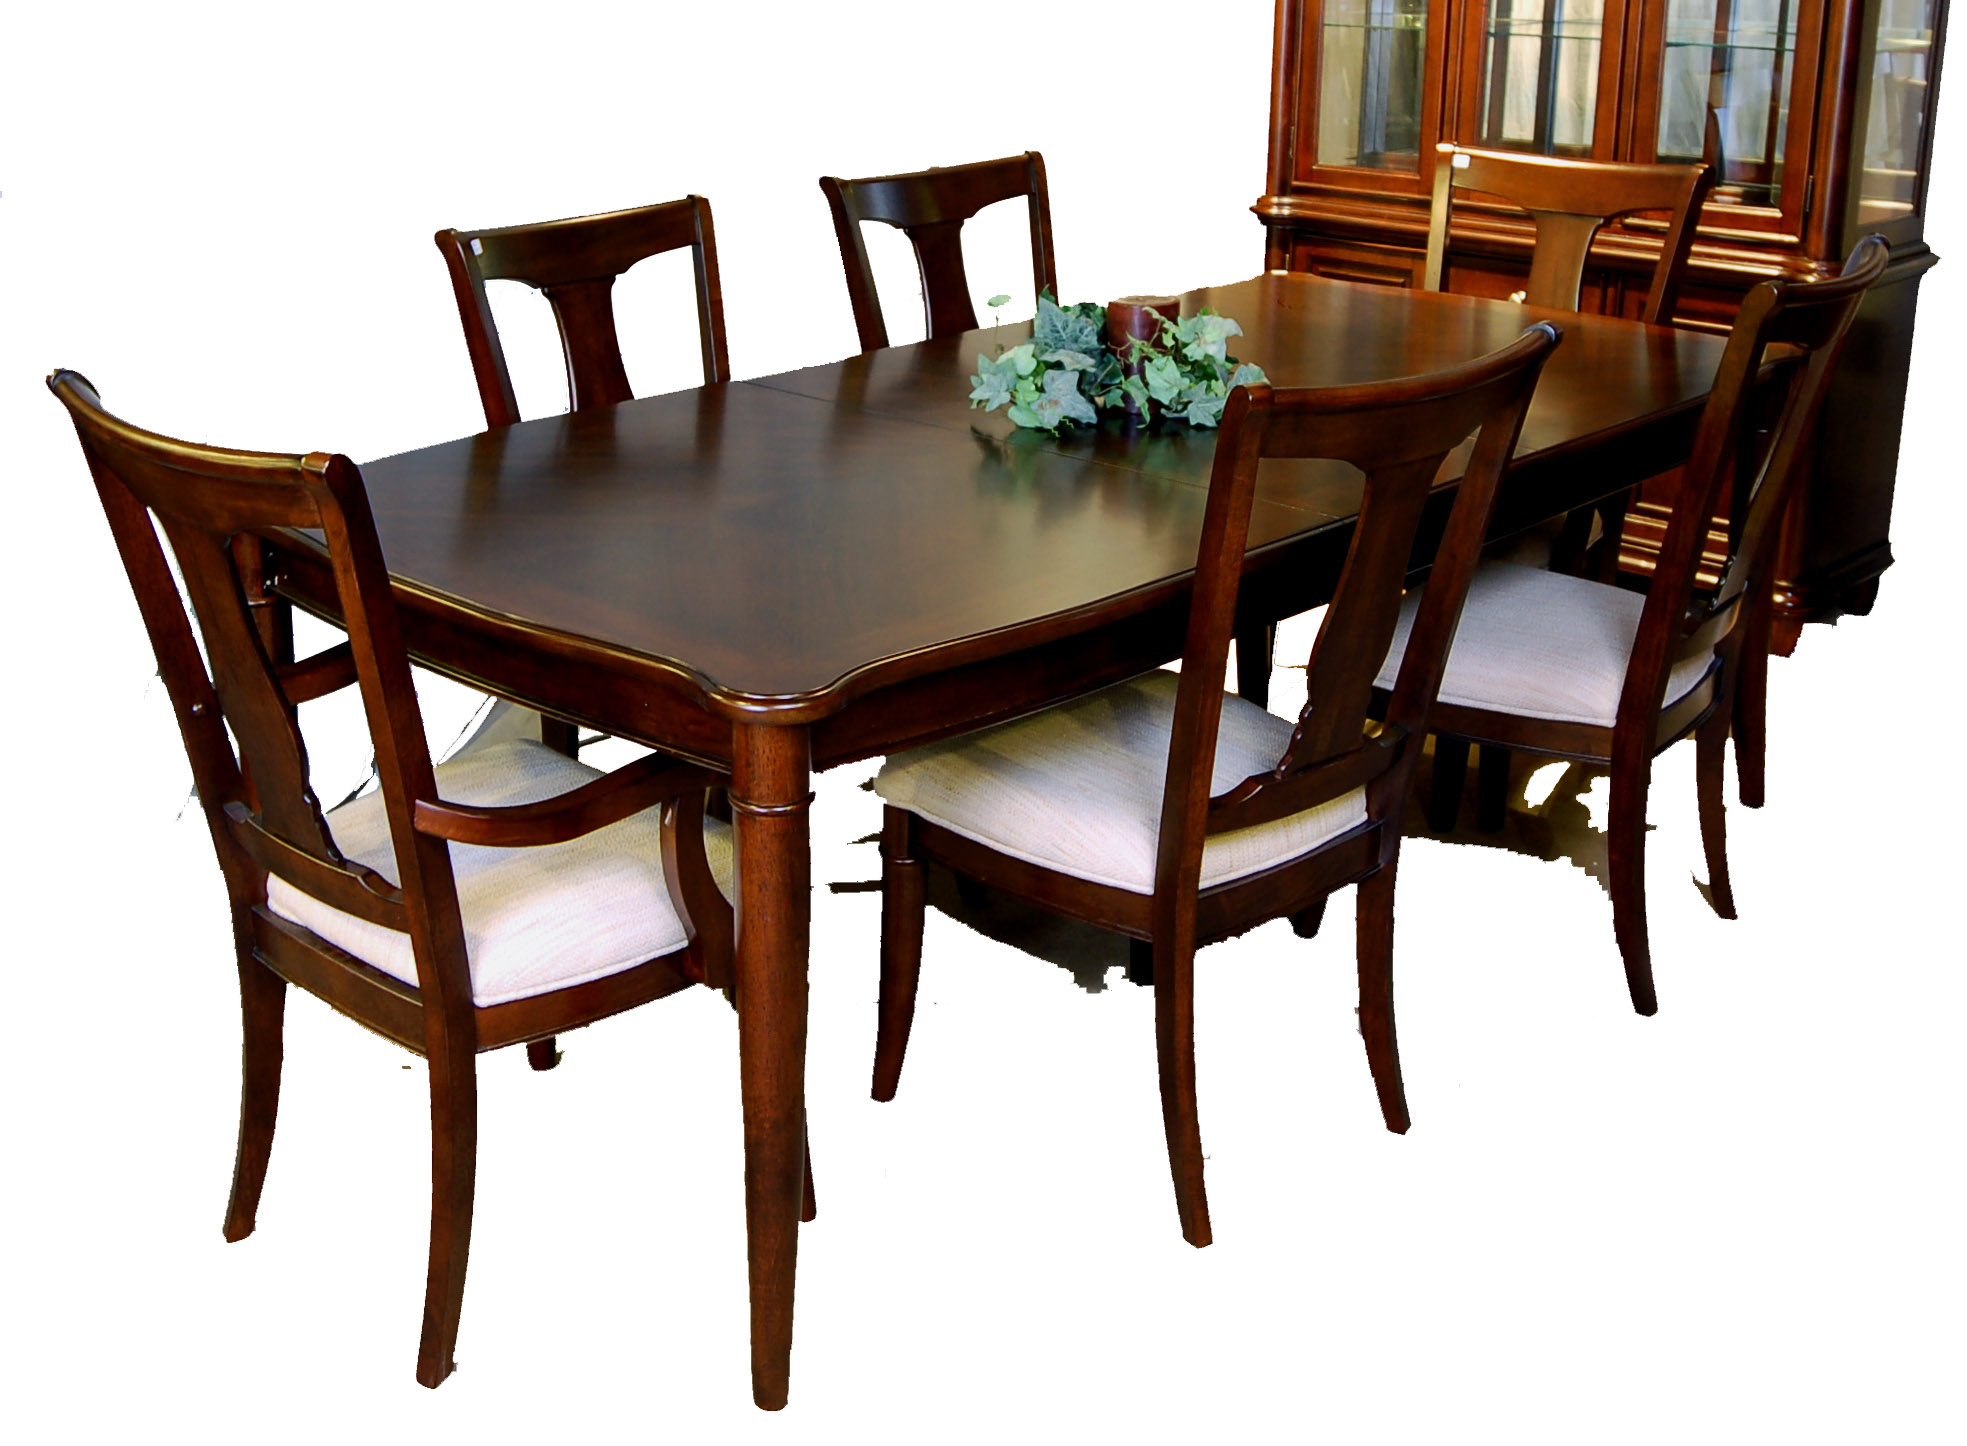 7 piece dining room table and chair set ebay for Dining room chair set